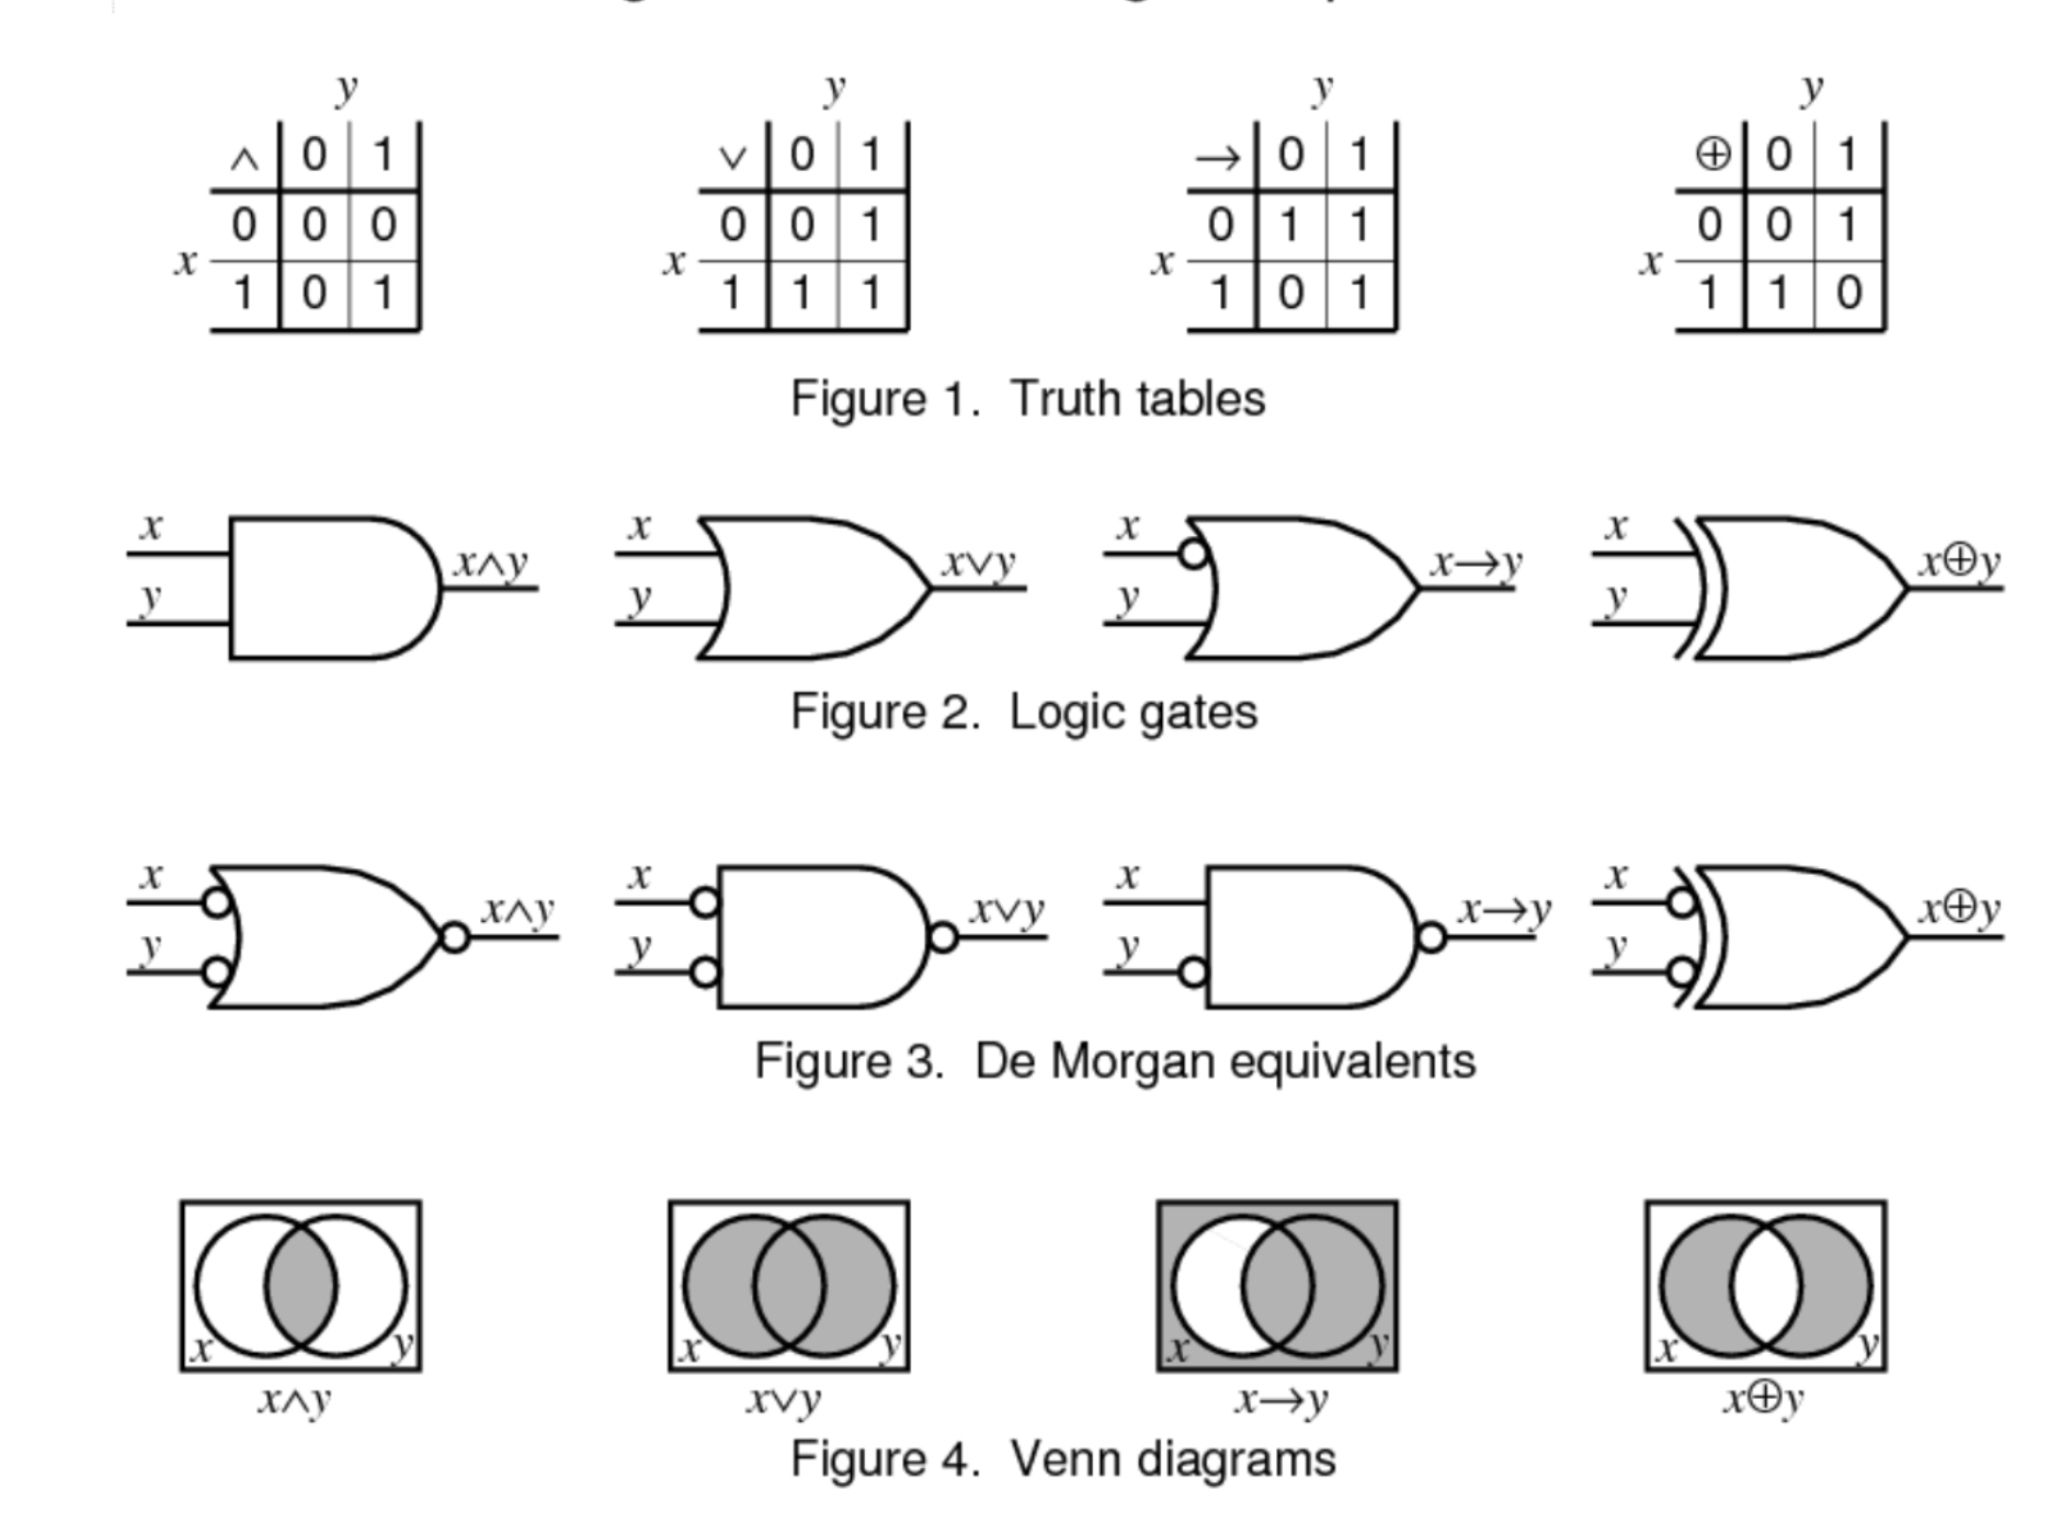 Booleon logic truth tables logic gates venn diagrams digital booleon logic truth tables logic gates venn diagrams pooptronica